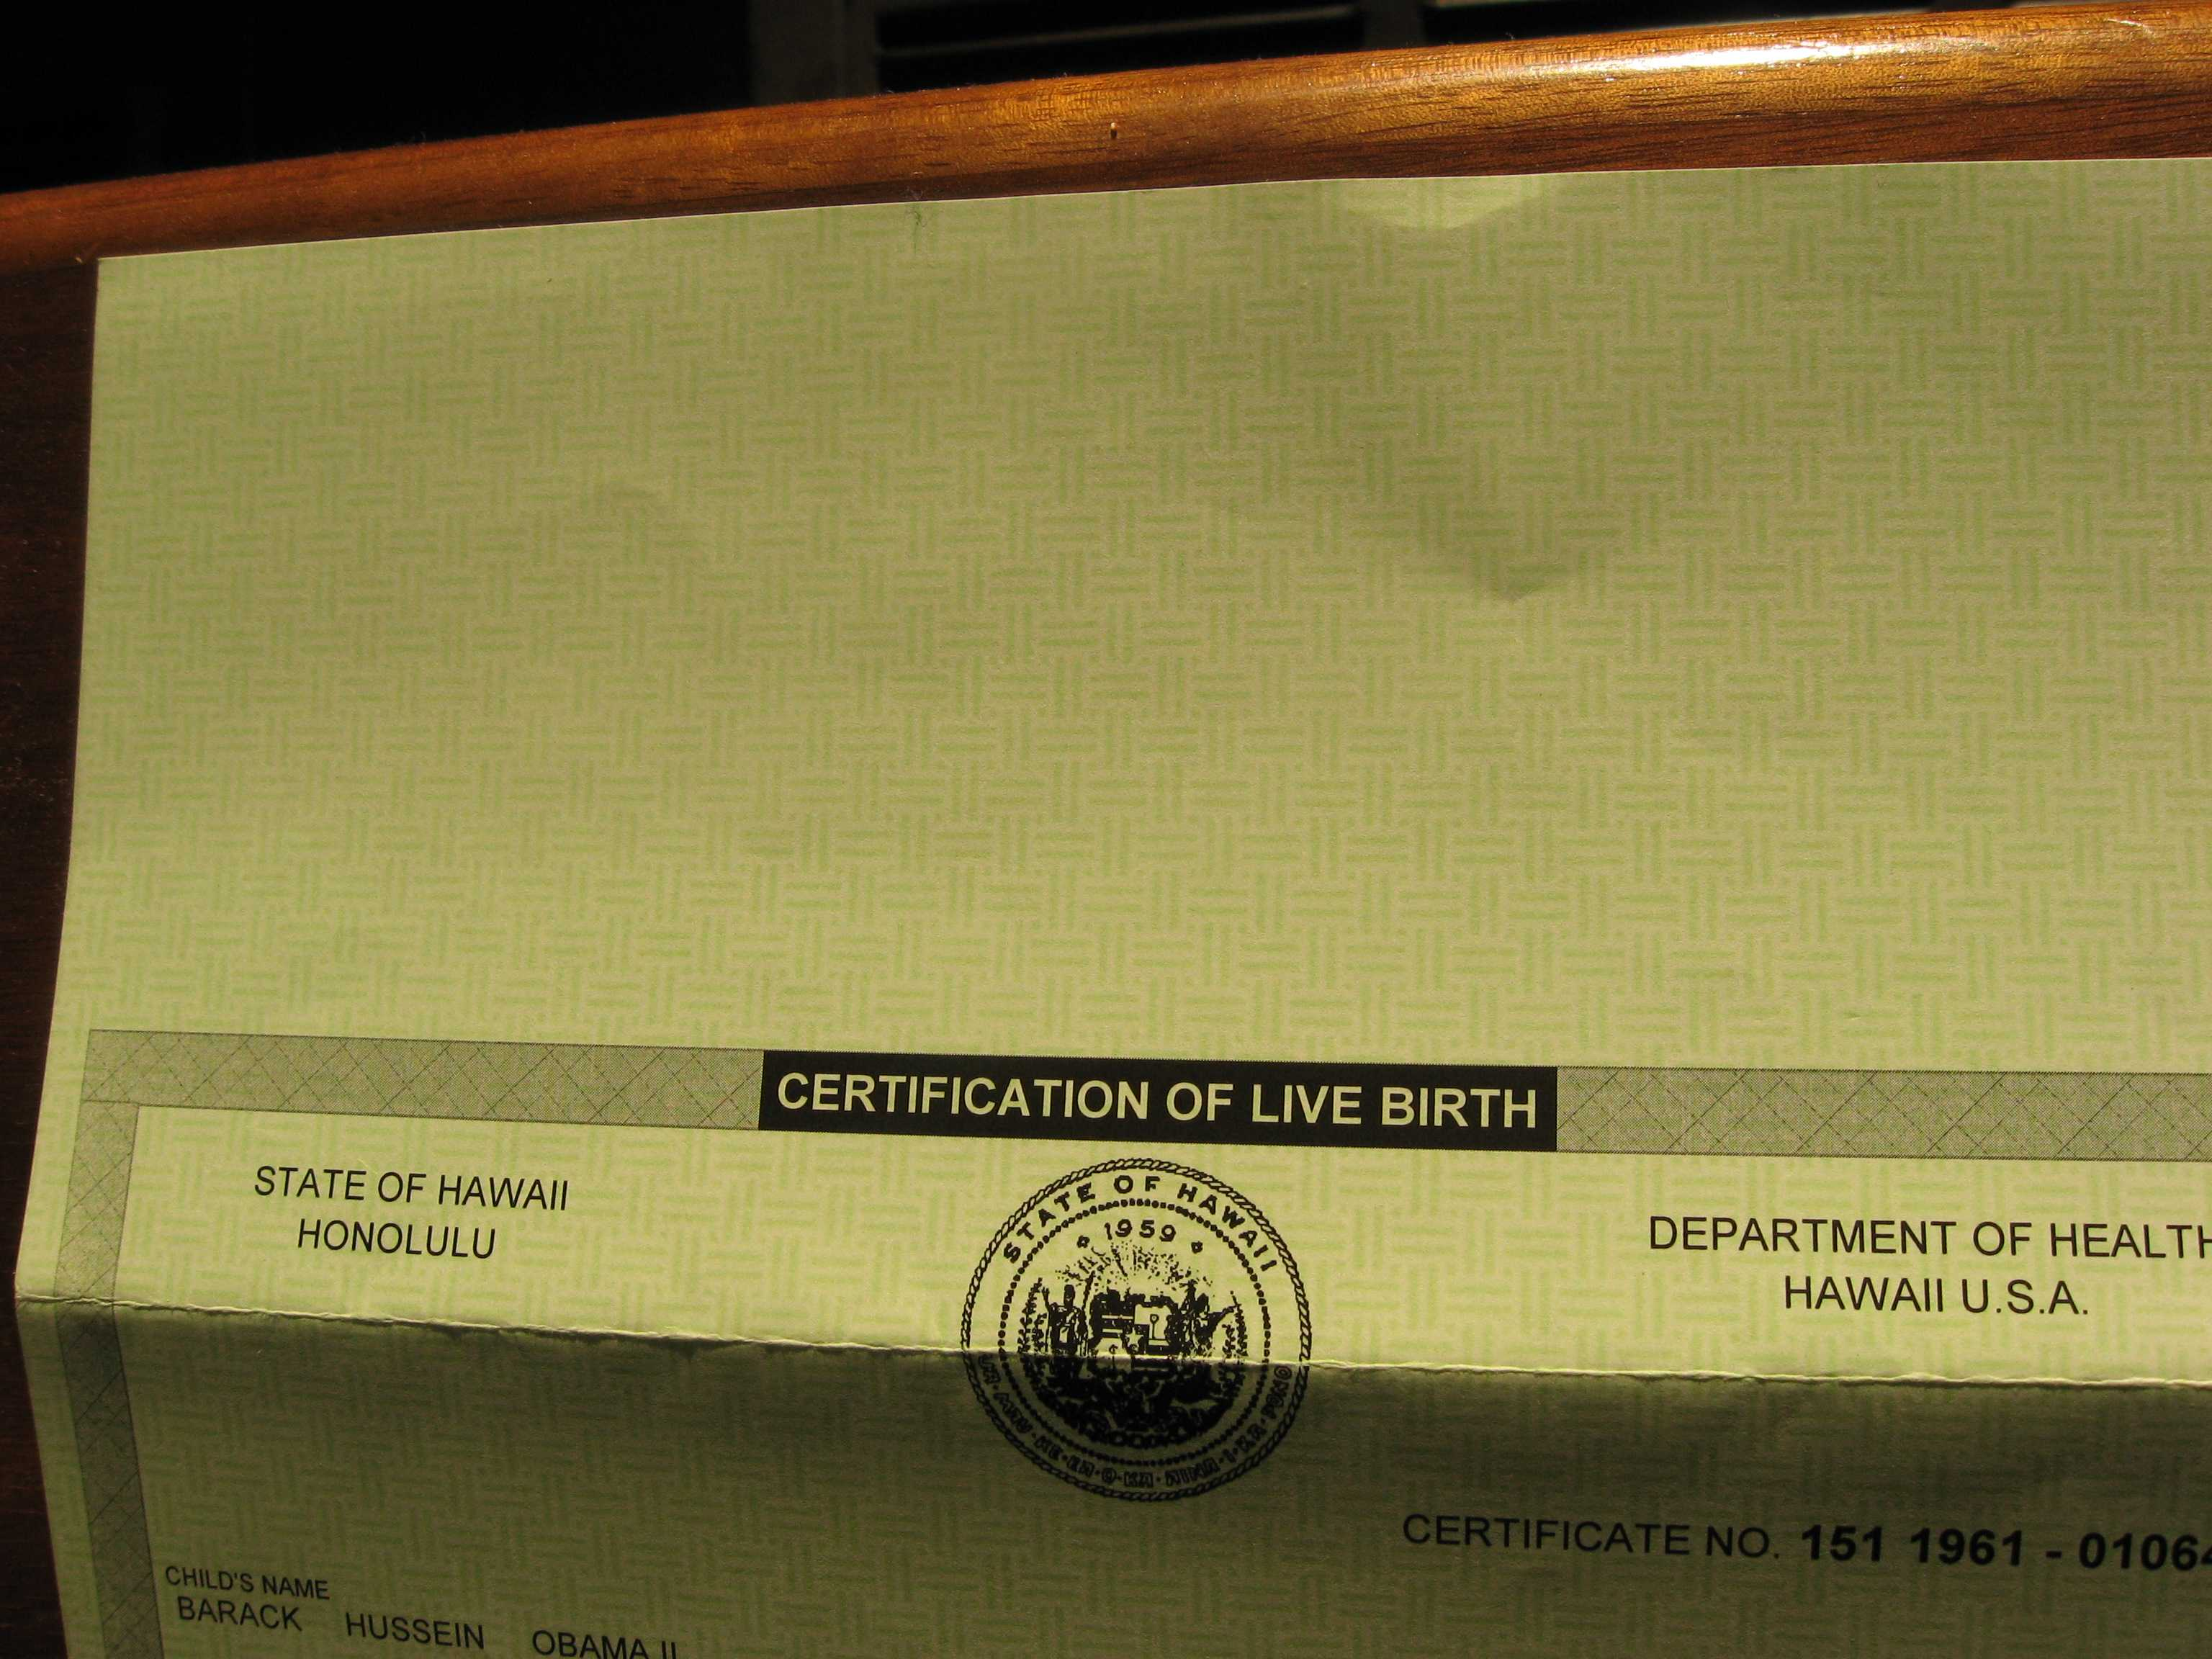 All about the birth certificates fogbow it looks like most birth documents do these days here are some from other states xflitez Choice Image